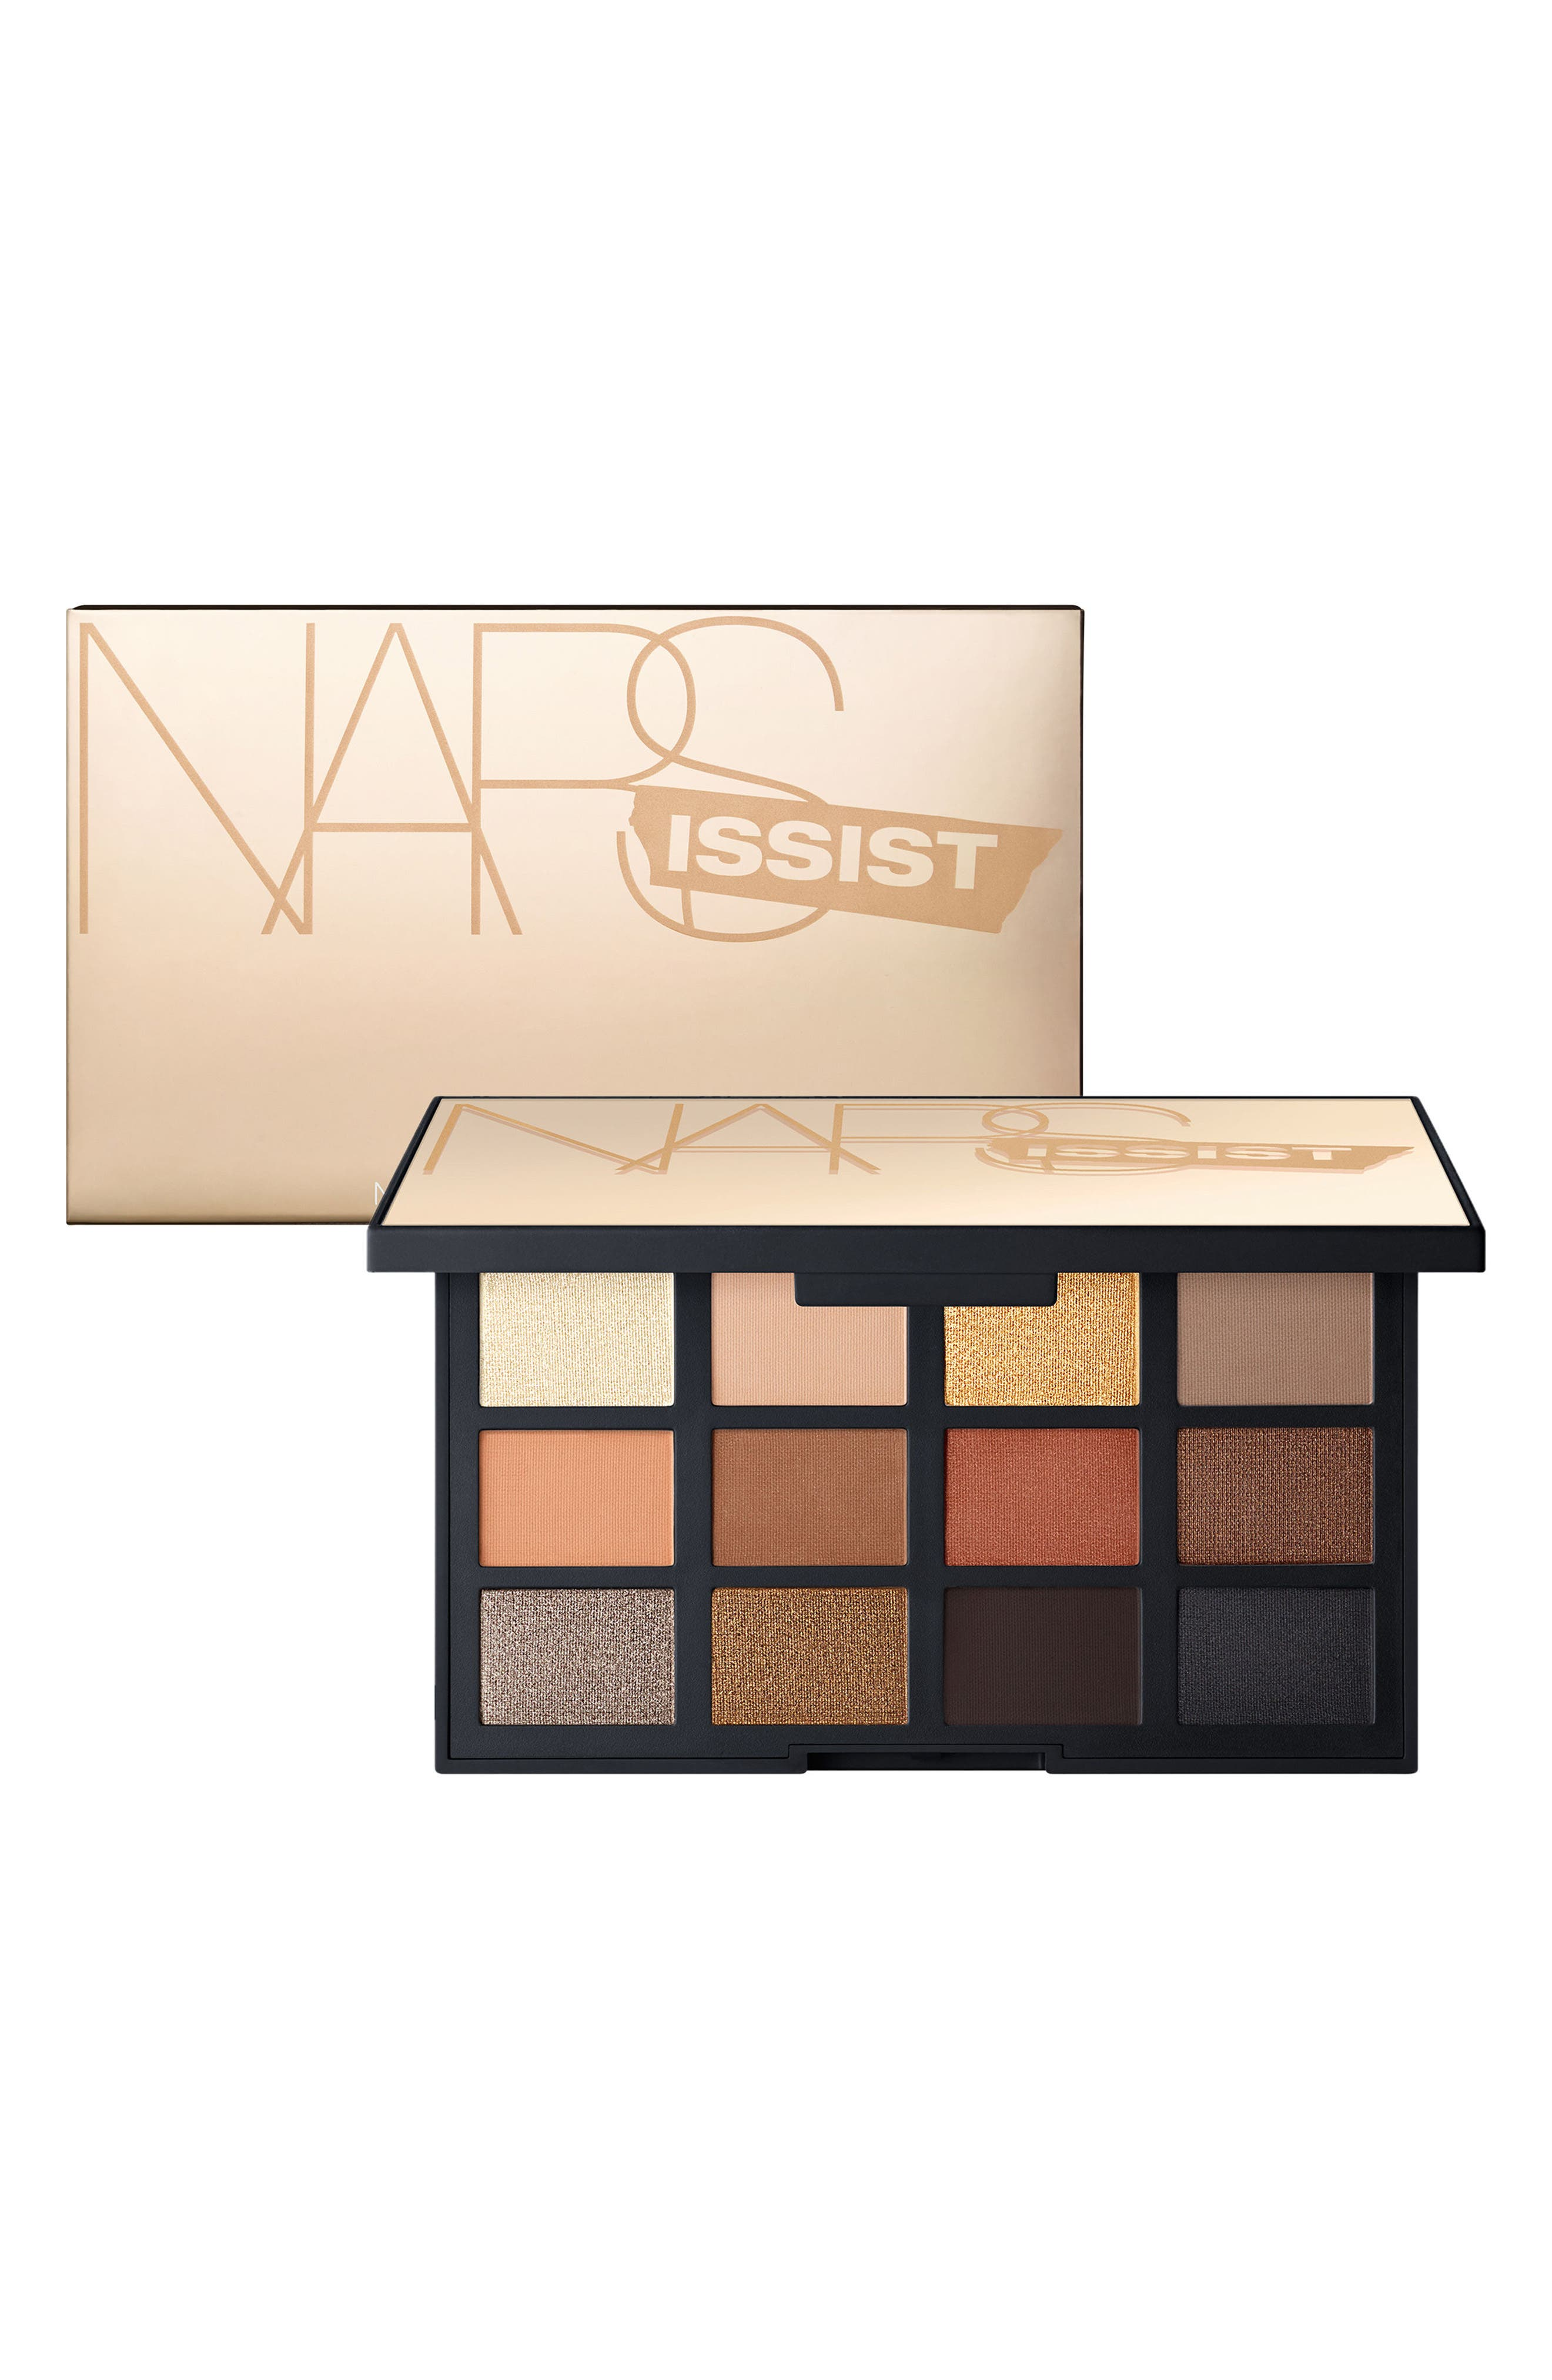 NARSissist Loaded Eyeshadow Palette,                             Alternate thumbnail 8, color,                             200